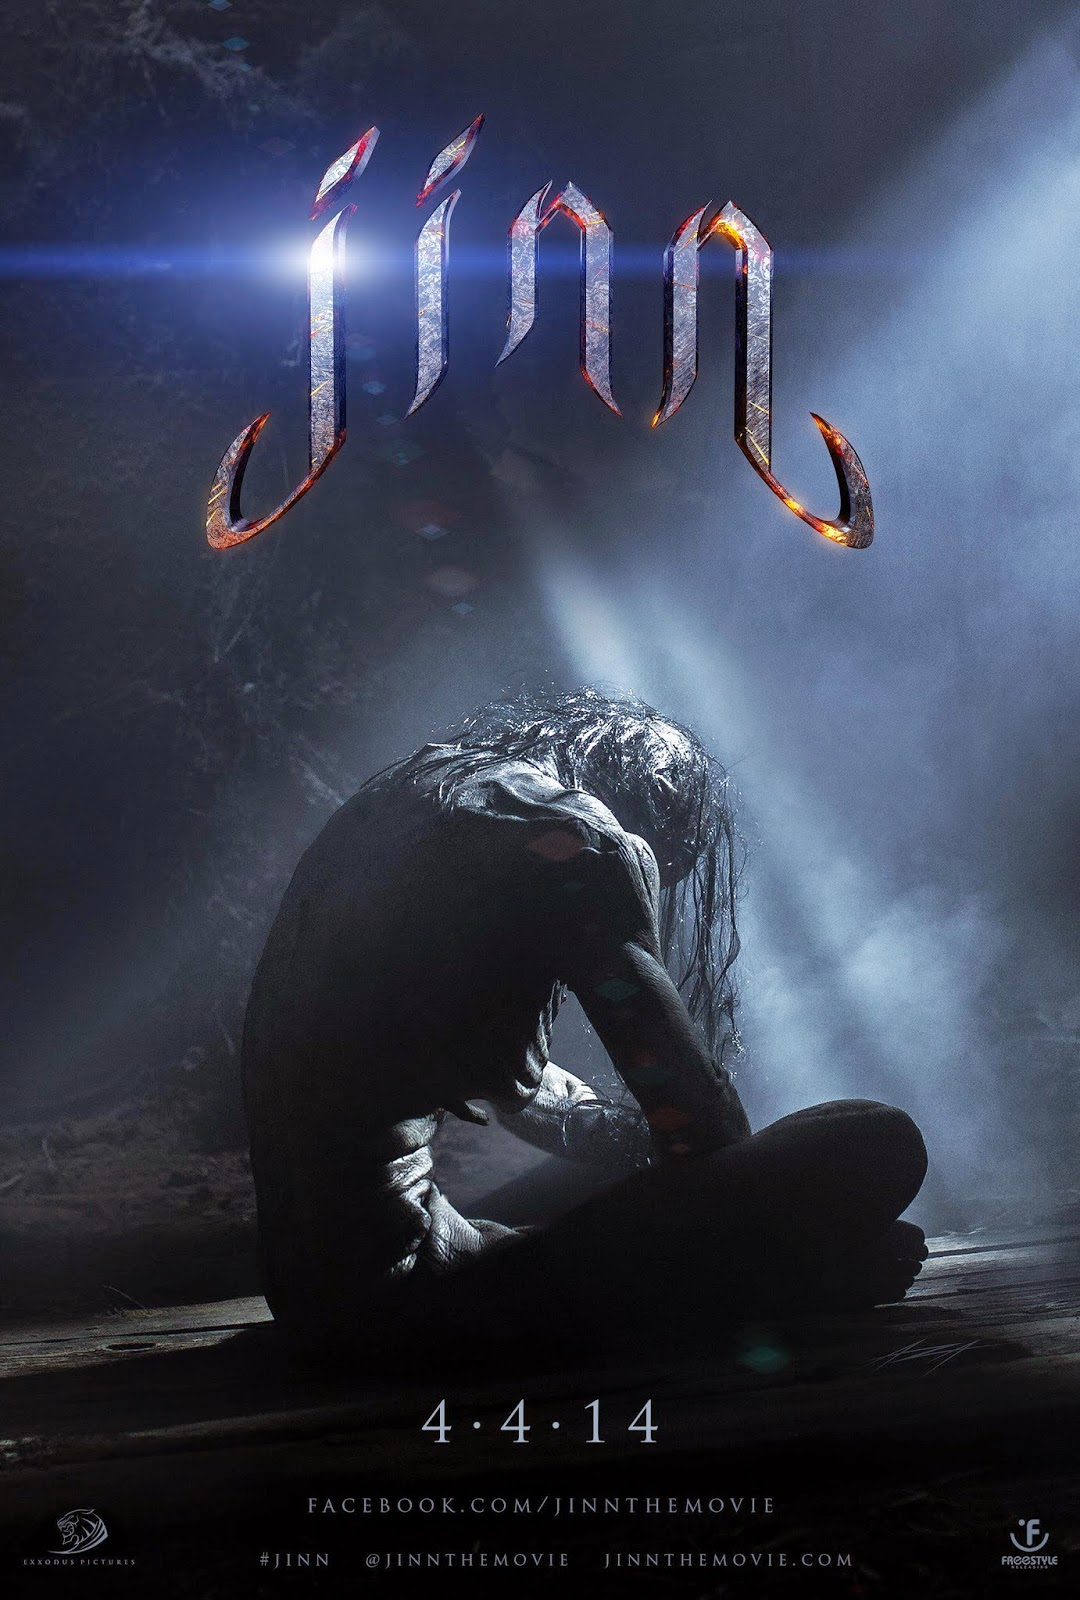 Jinn 2018 dvd free movie download torrent.